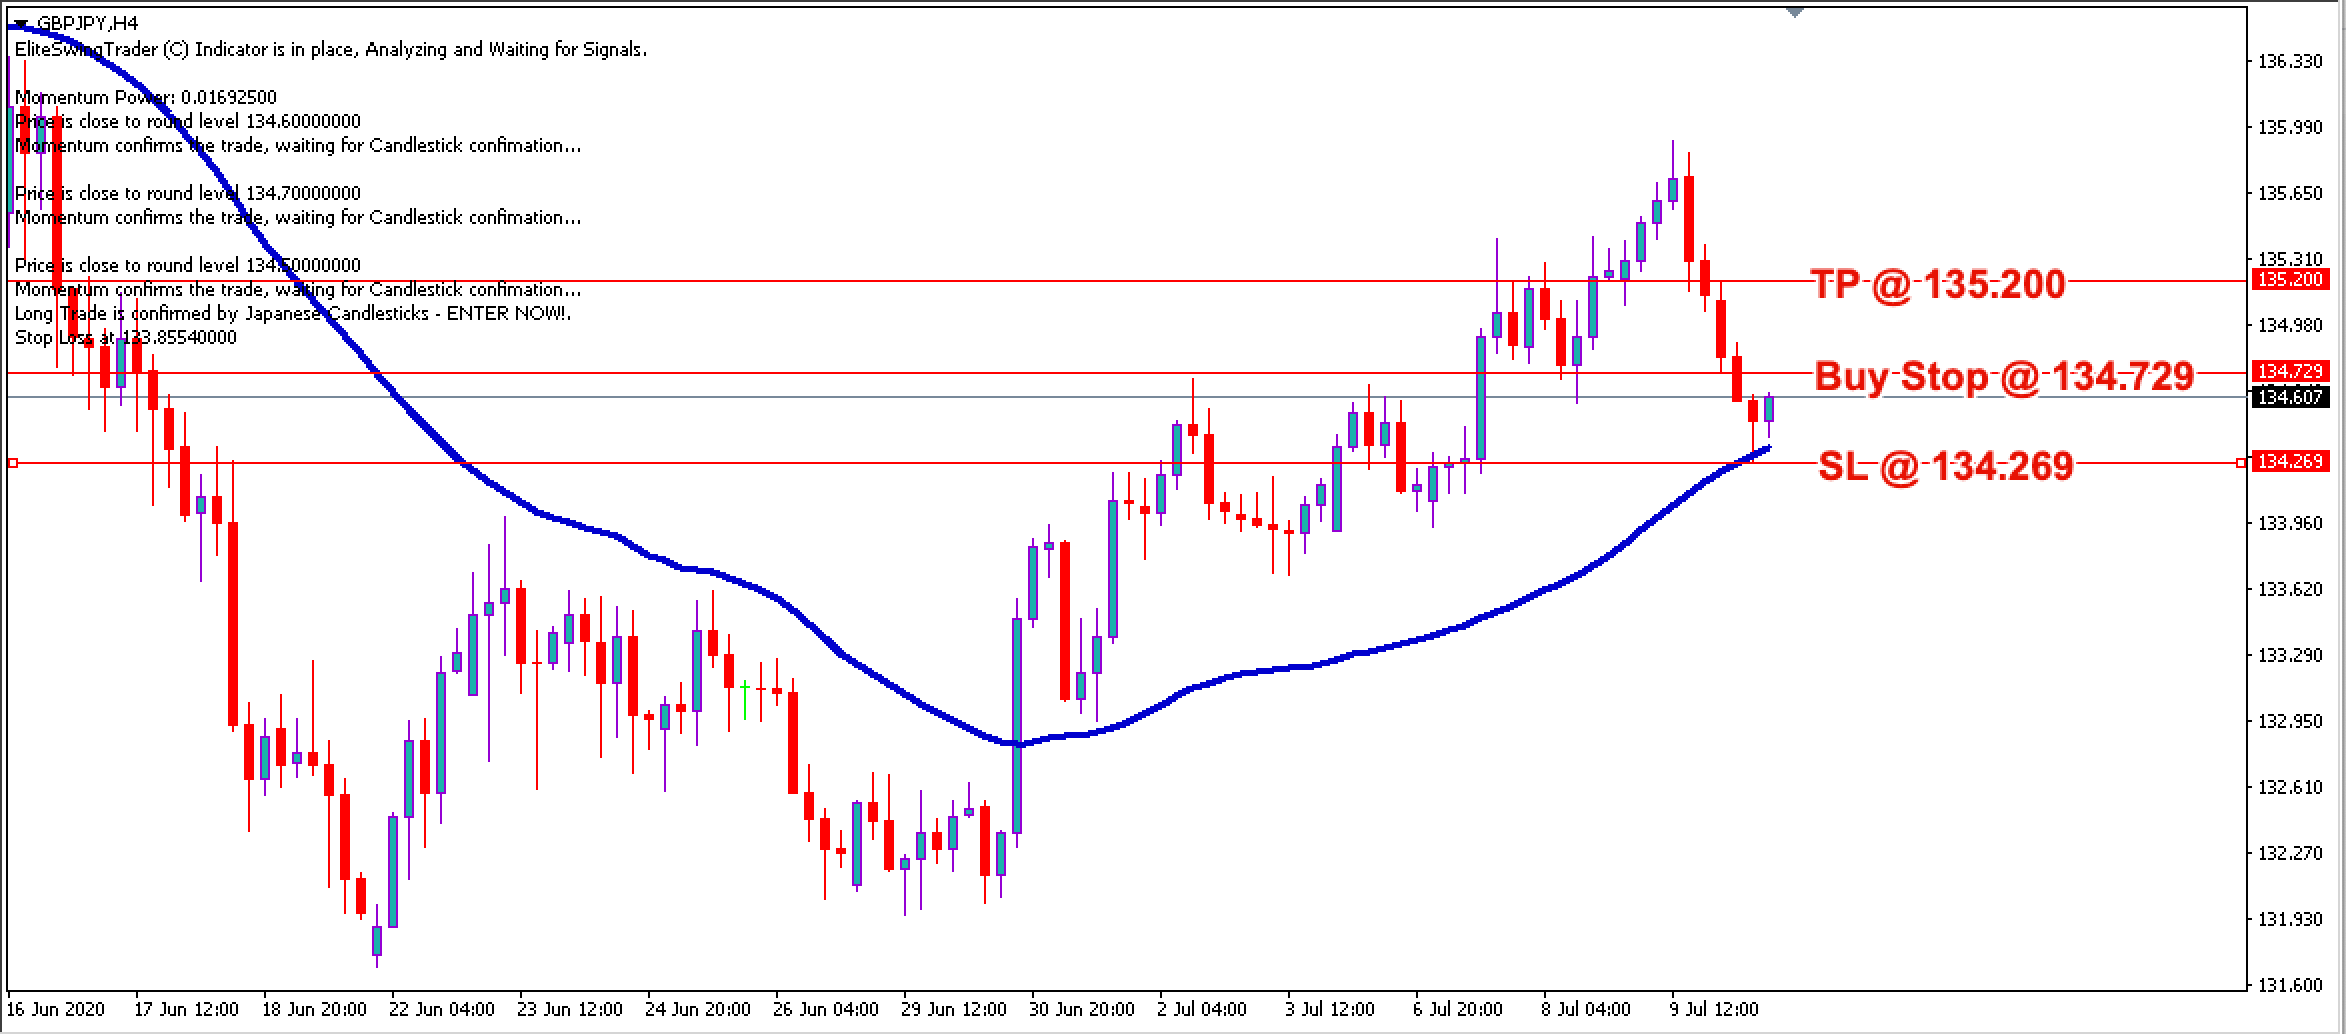 GBP/JPY Free Forex Trading Signals - 10th July 2020